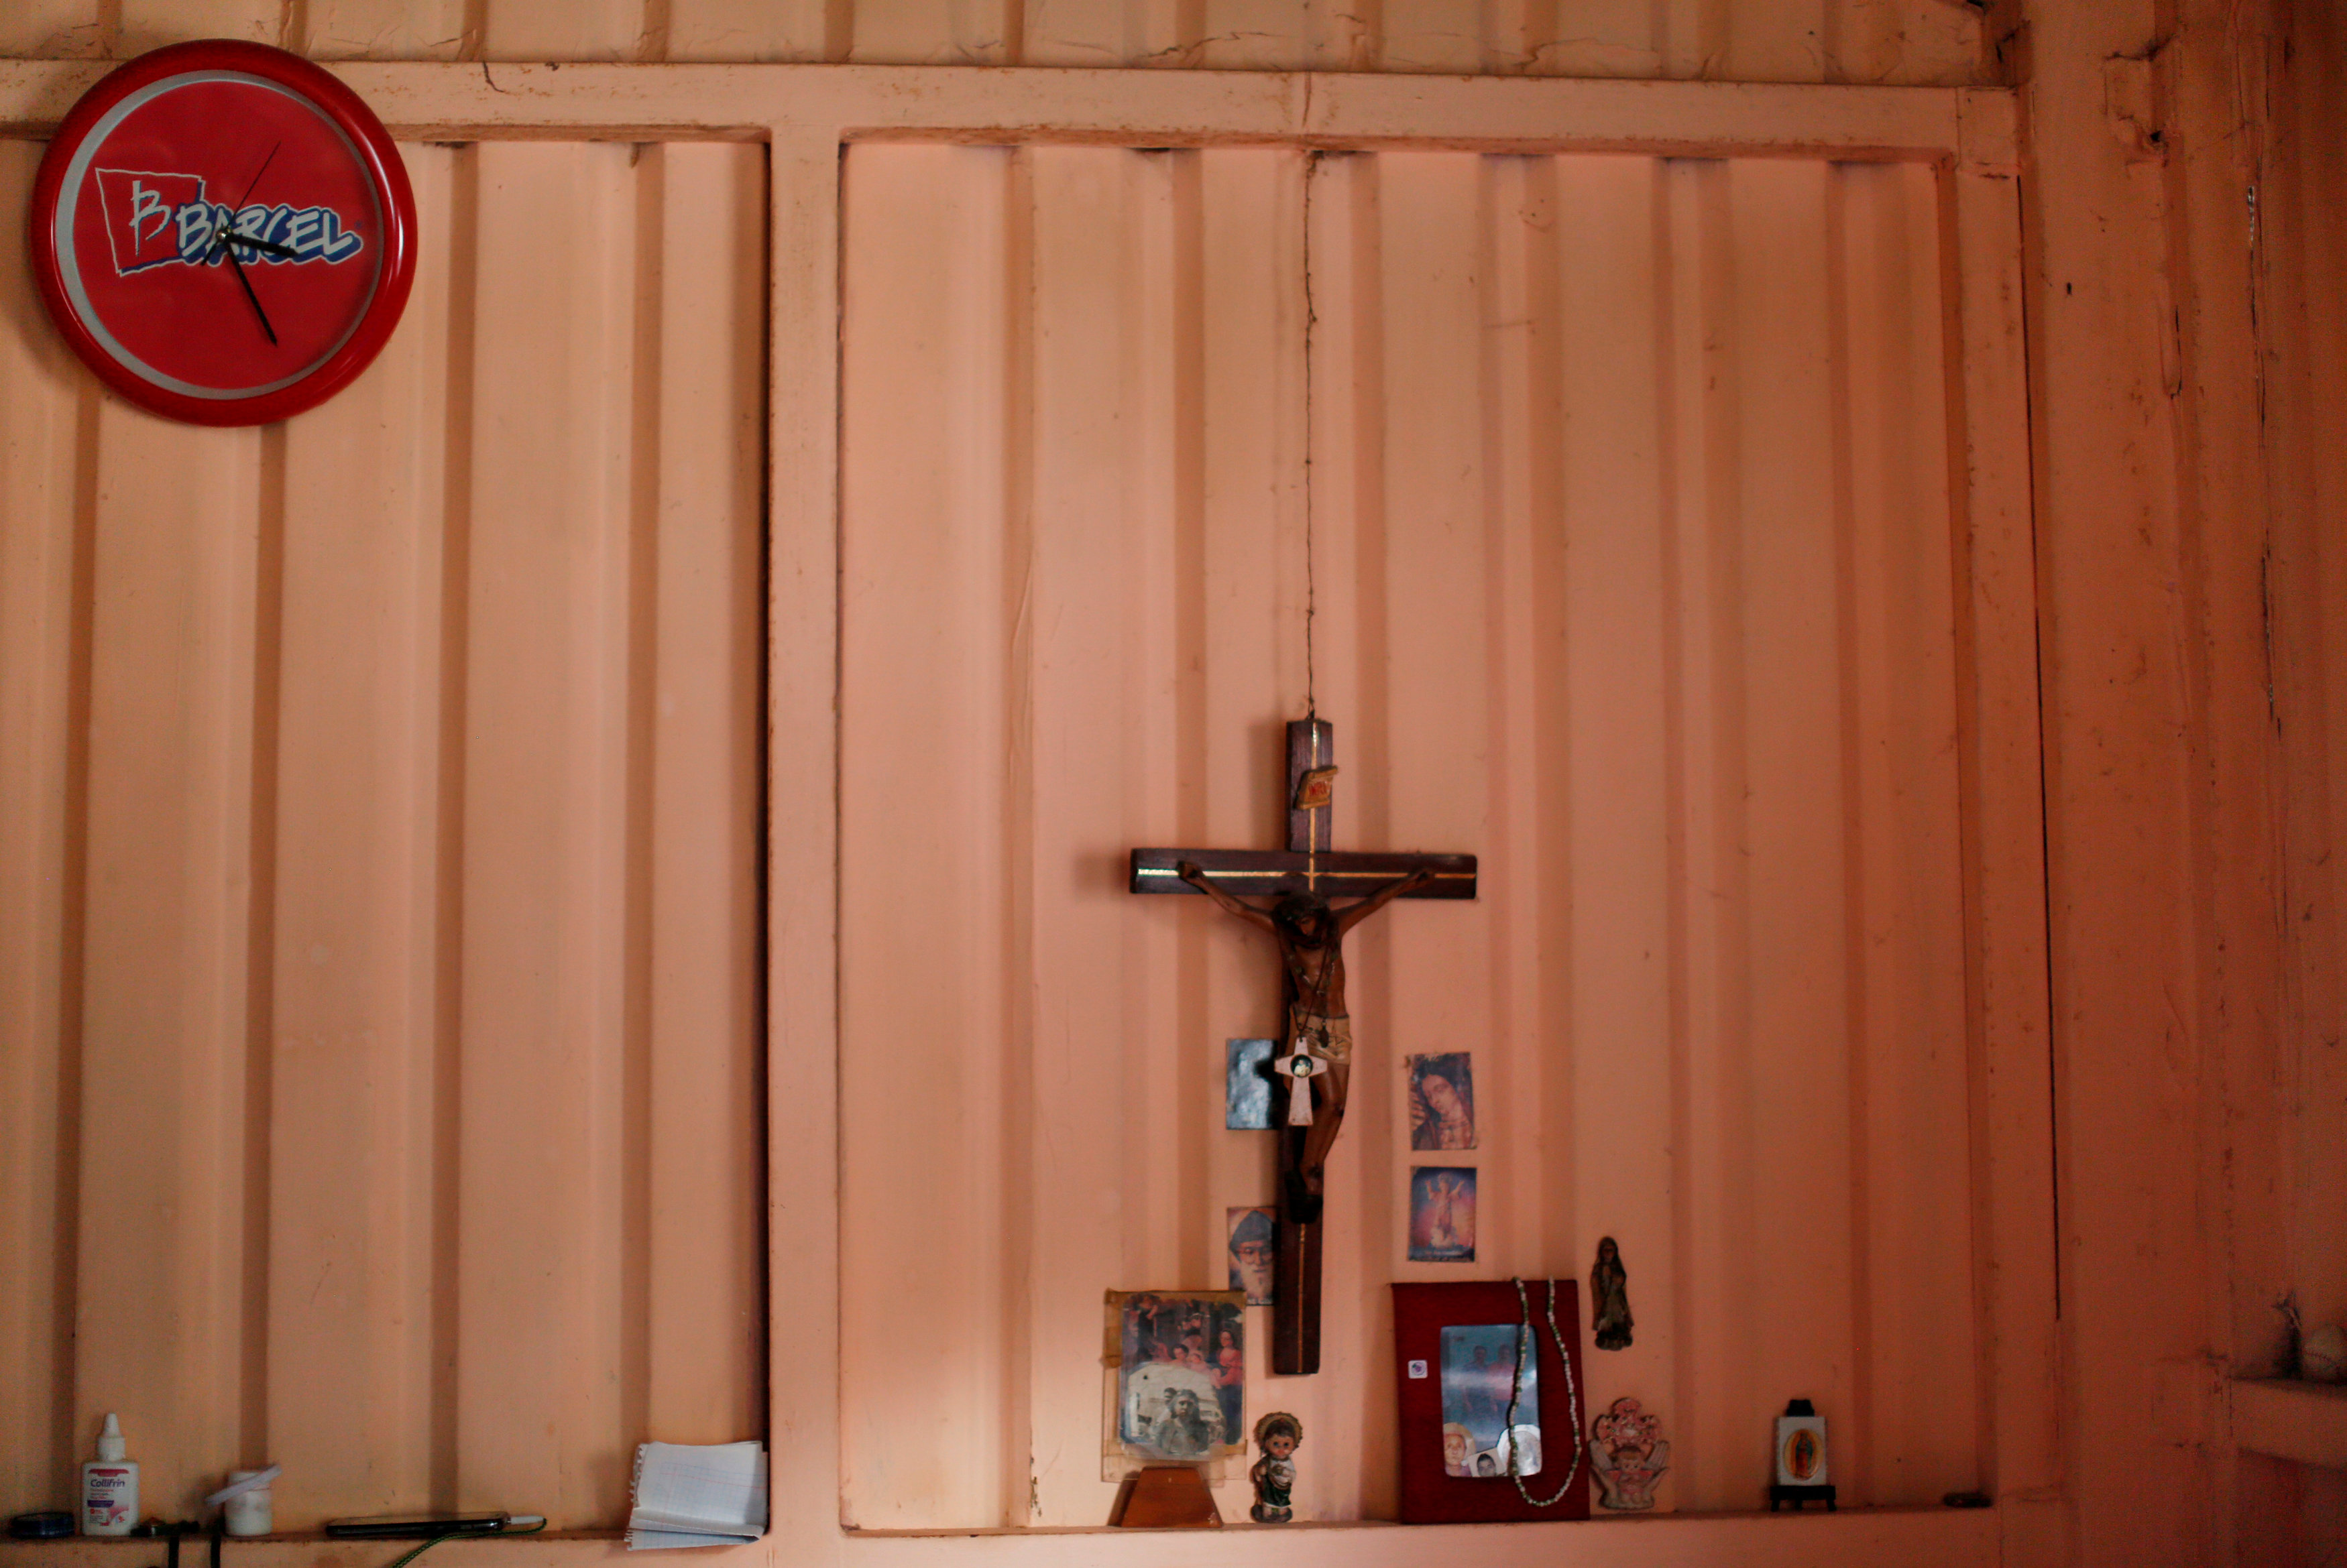 A cross is displayed at the home of Martha Mejia at the camp known as No.3, in Mexico City, Mexico, October 17, 2017. The camp was founded in 1985 after an earthquake, which killed around 5,000 people. Mejia lost her home in the 1985 earthquake. REUTERS/Carlos Jasso